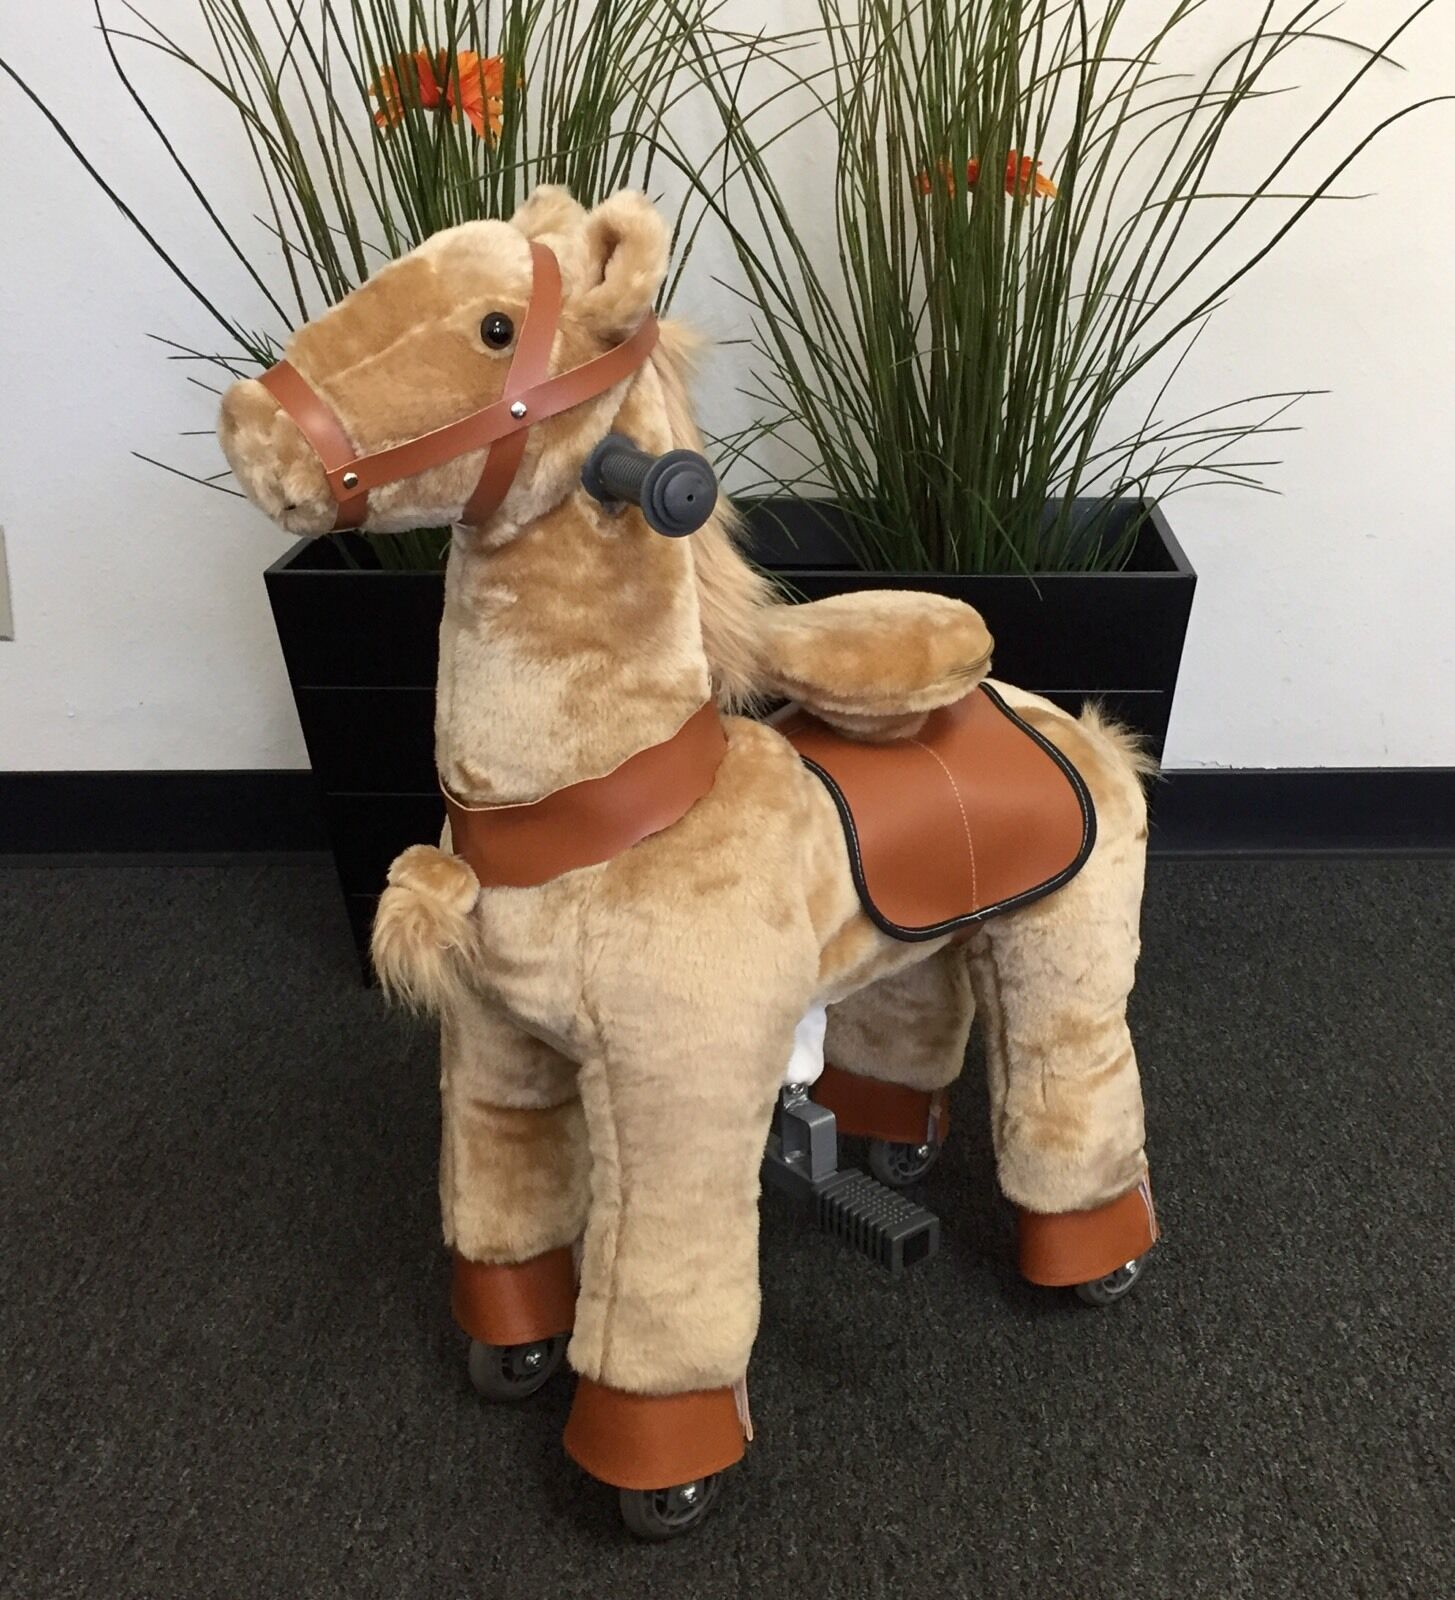 SMALL Giddy Up Ride Horse Pony Ride On SMALL BEIGE Ages 2-5 (01G) - BRAND NEW